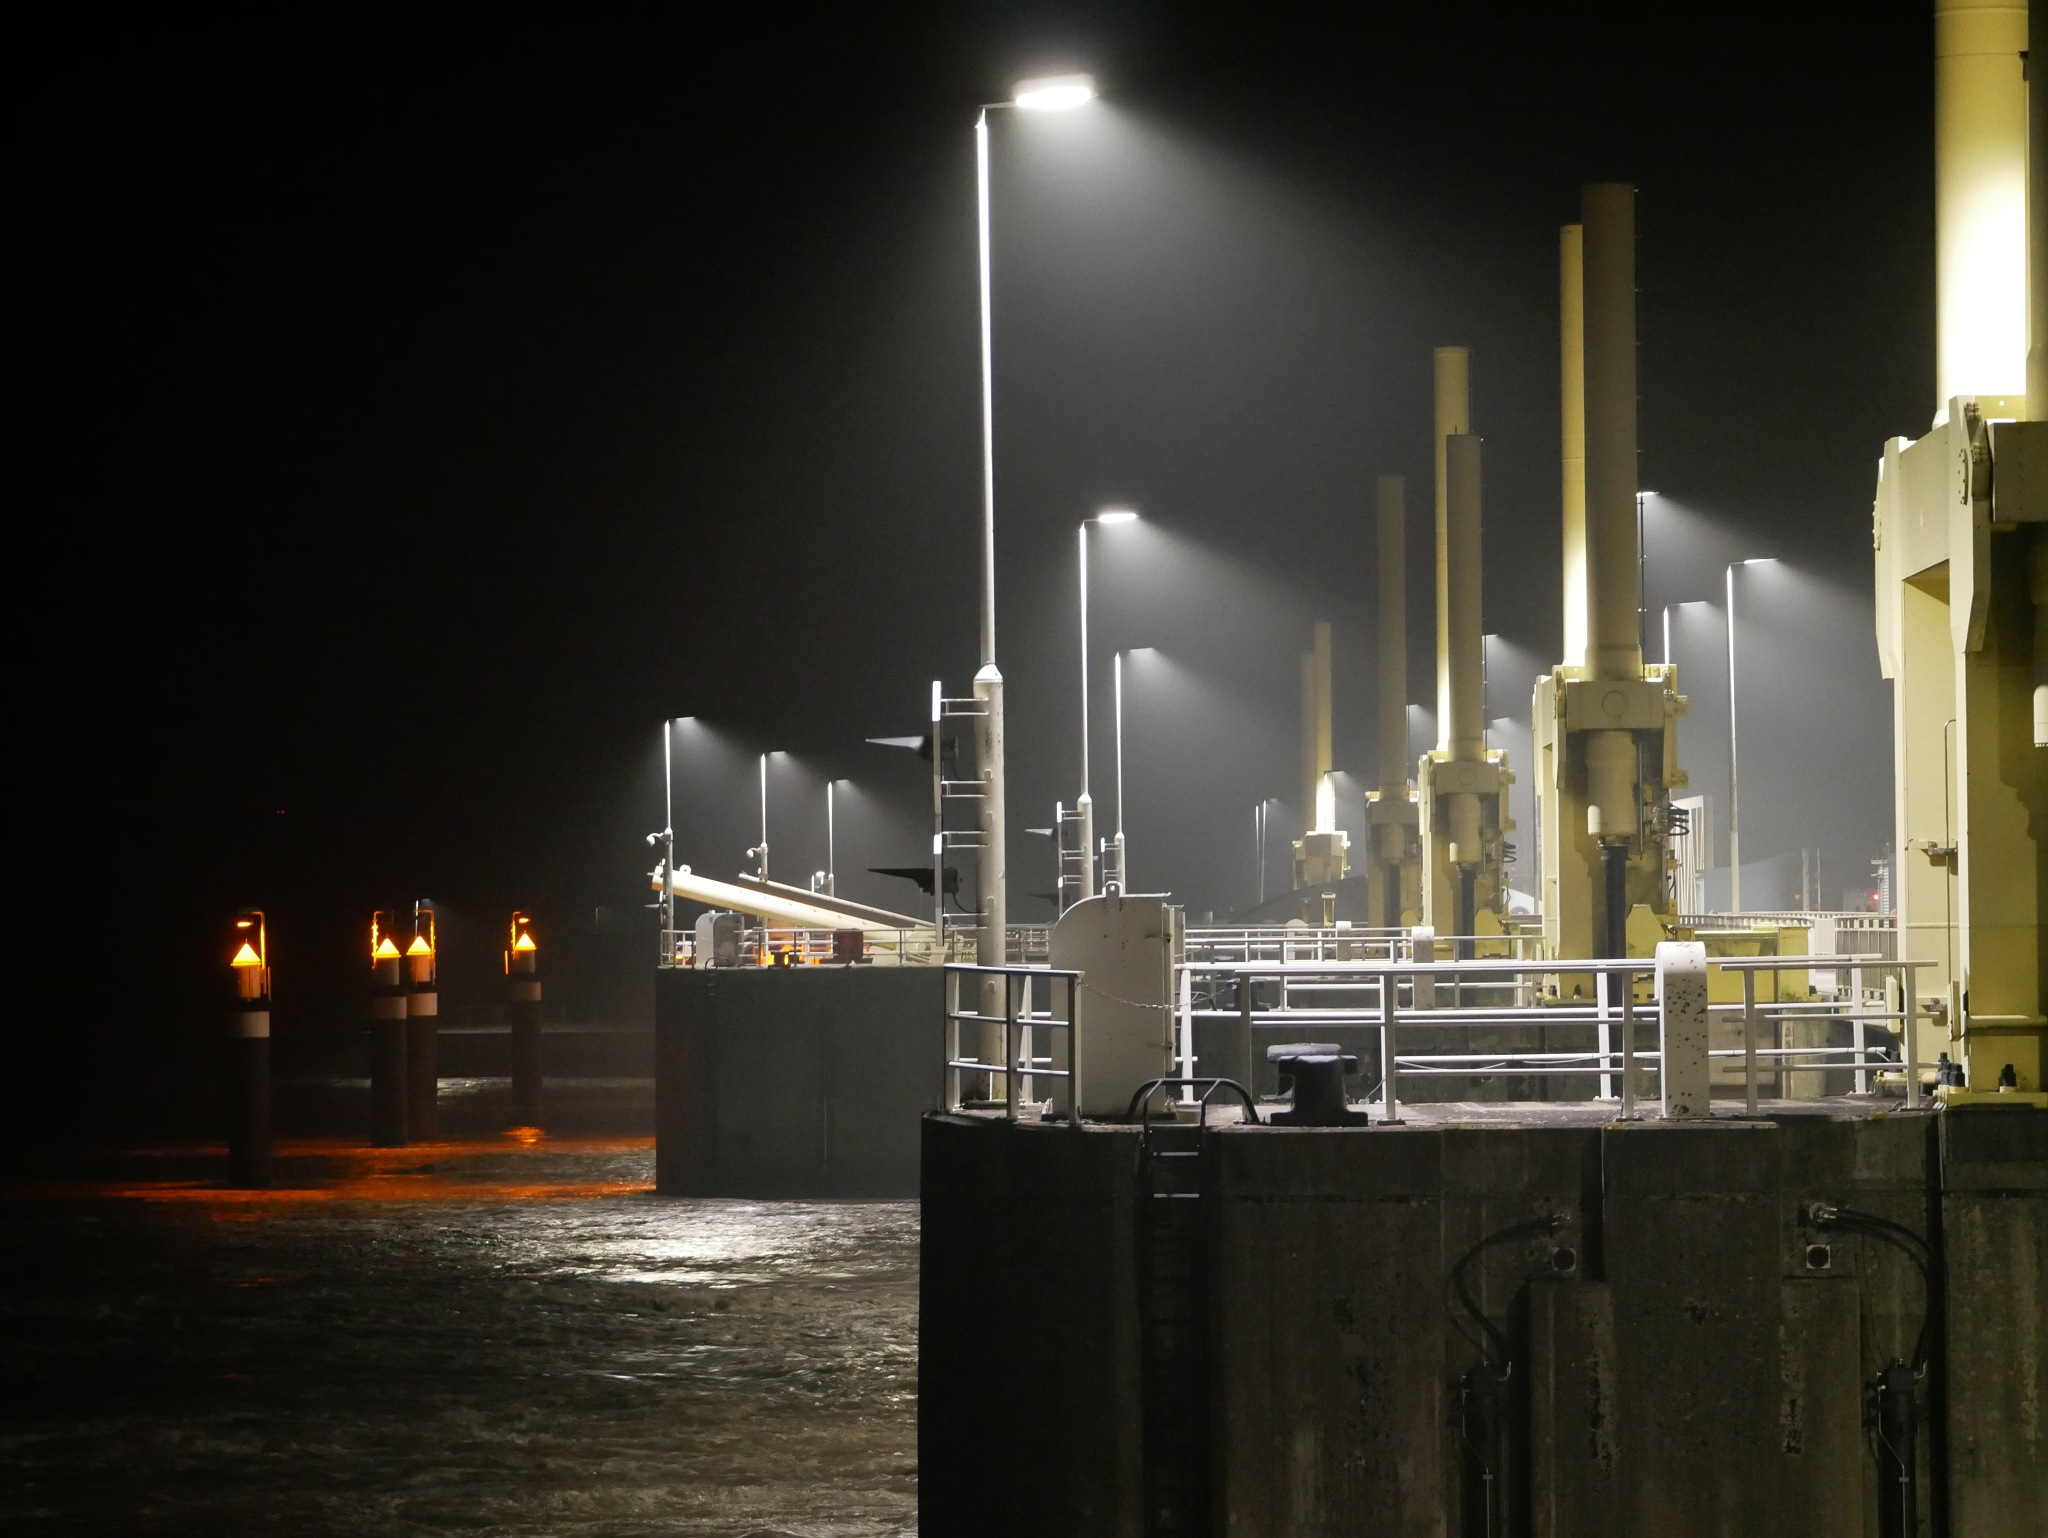 The Gandersum dam in the river Ems by night. by Martha de Vries